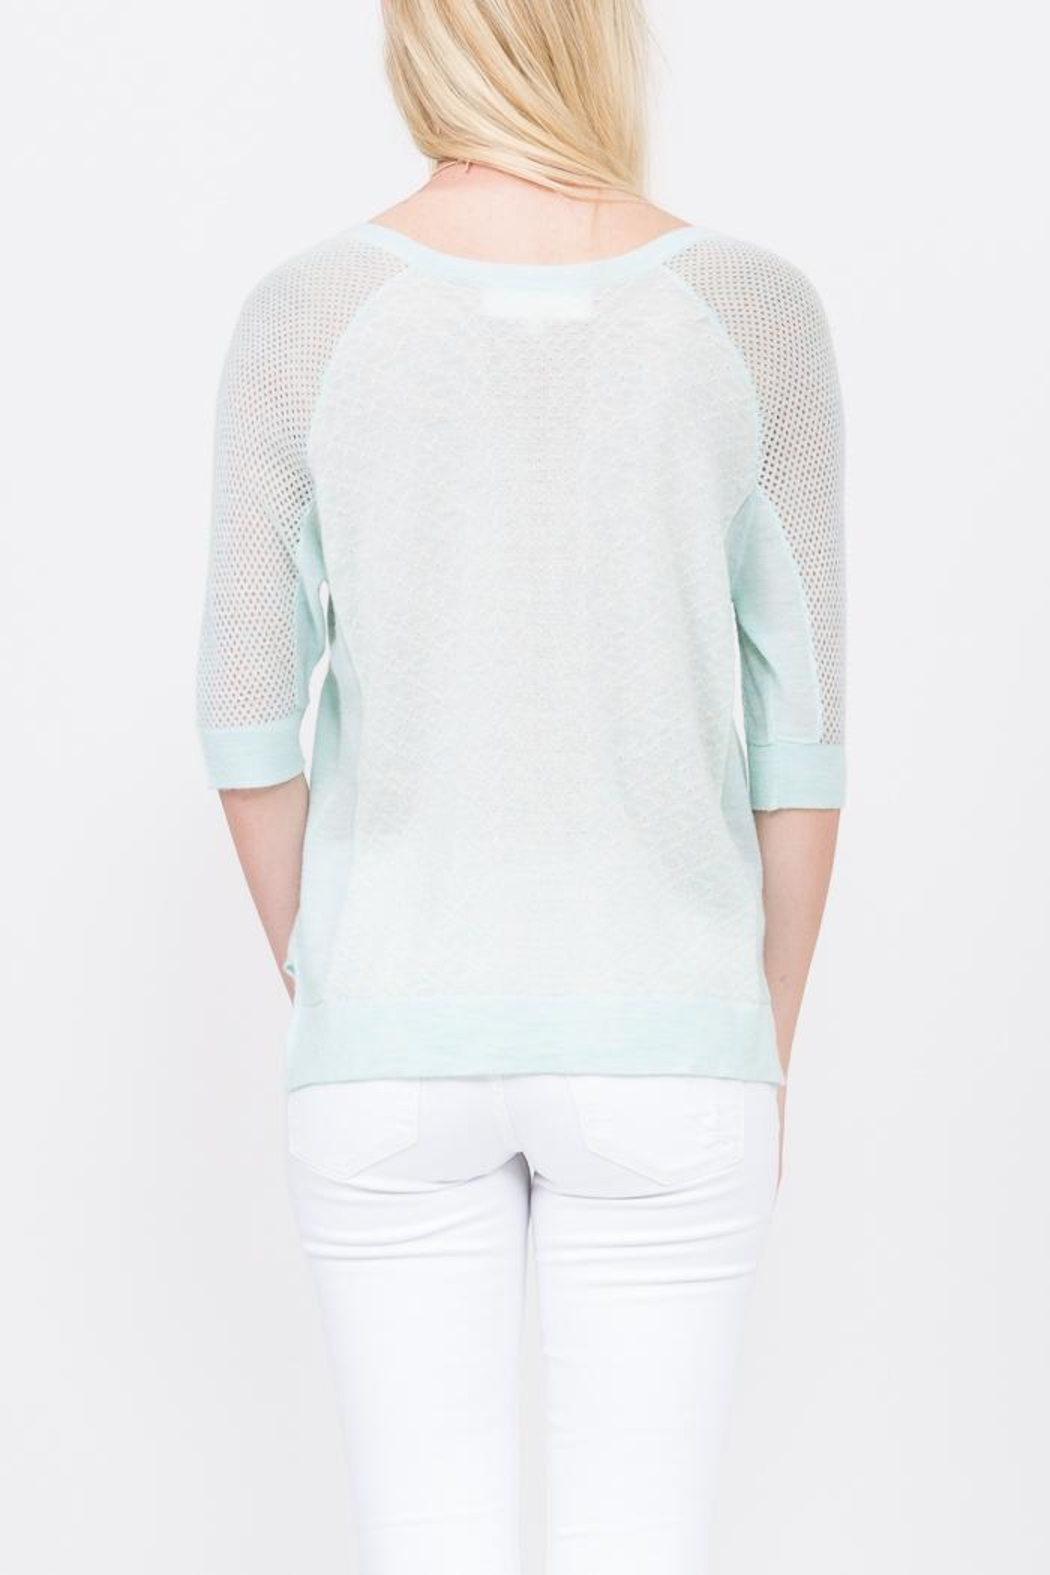 QUINN Grace Panaeled Sweater - Side Cropped Image